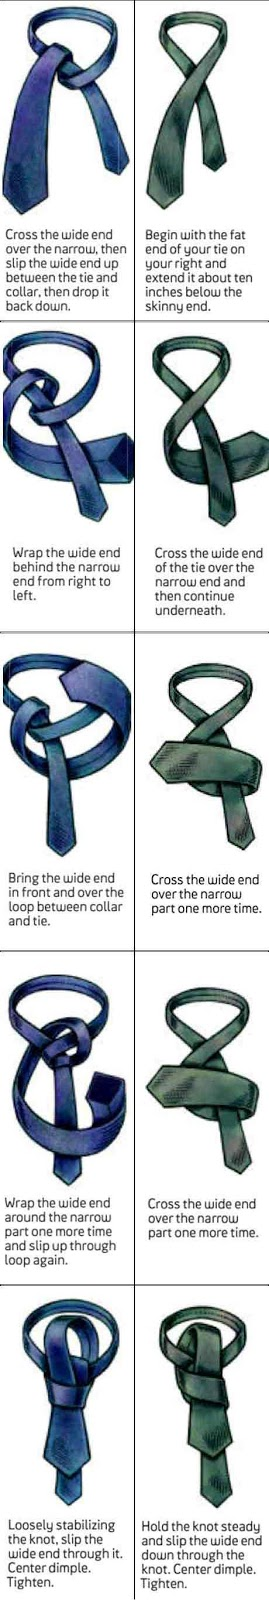 Pictorial guide on how to tie a tie for cooperate dressing pictorial guide on how to tie a tie ccuart